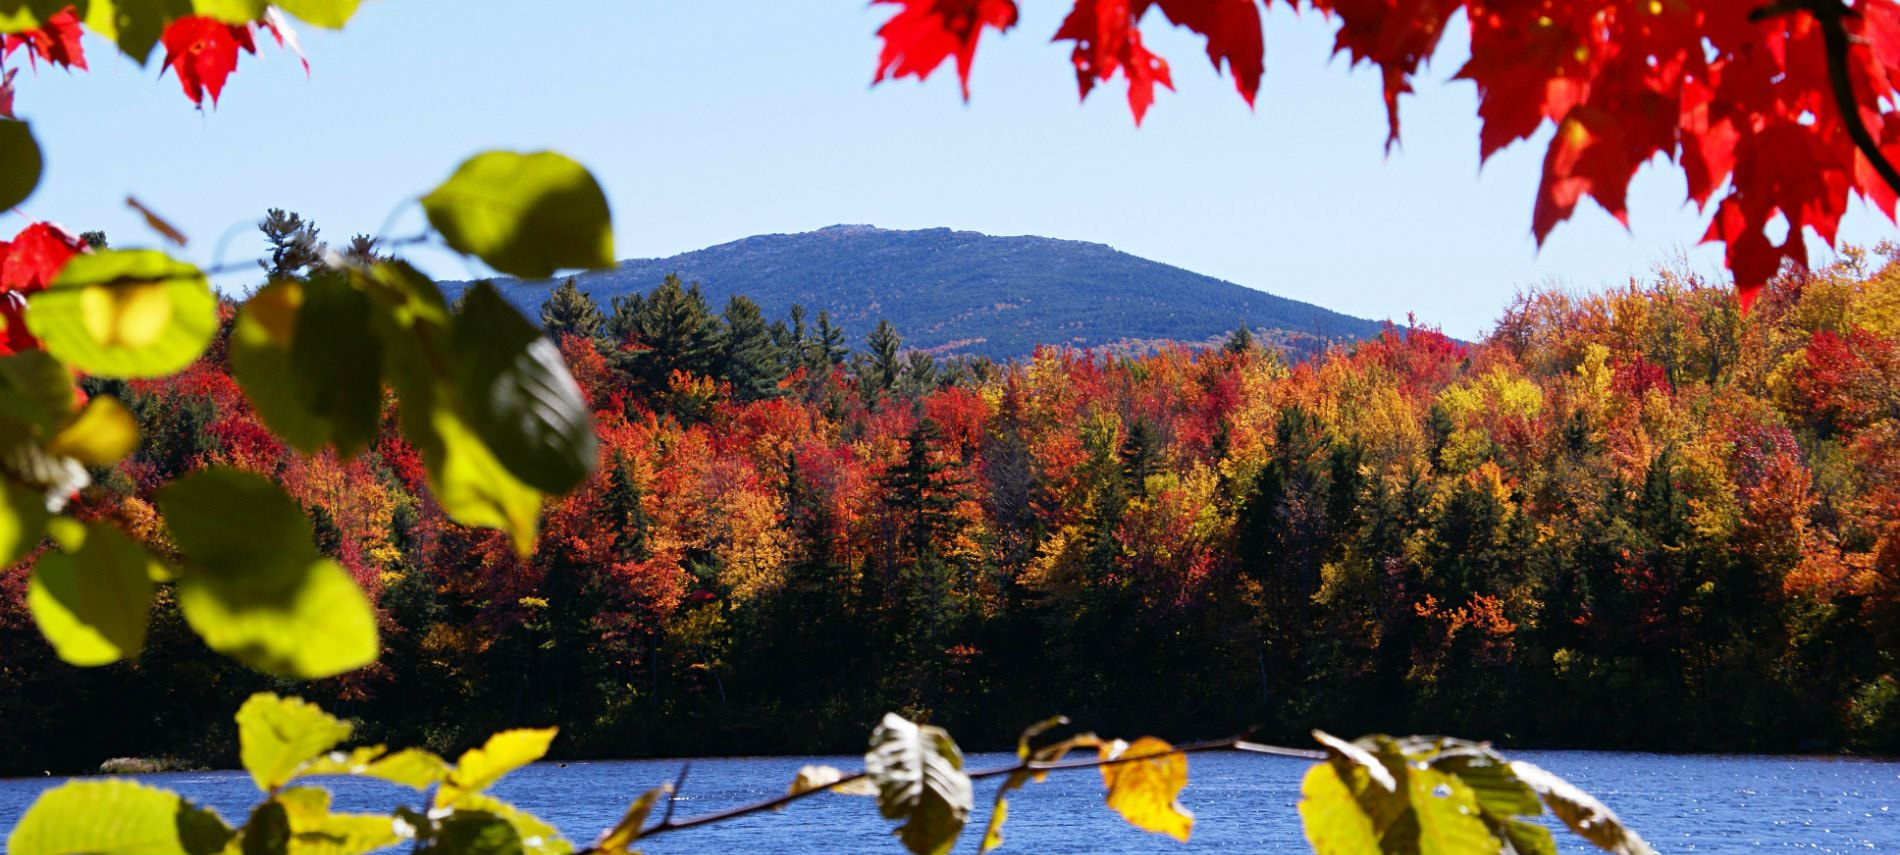 View through colorful fall foliage of Monadnock mountain peak with colorful autumn trees and blue lake in the forefront